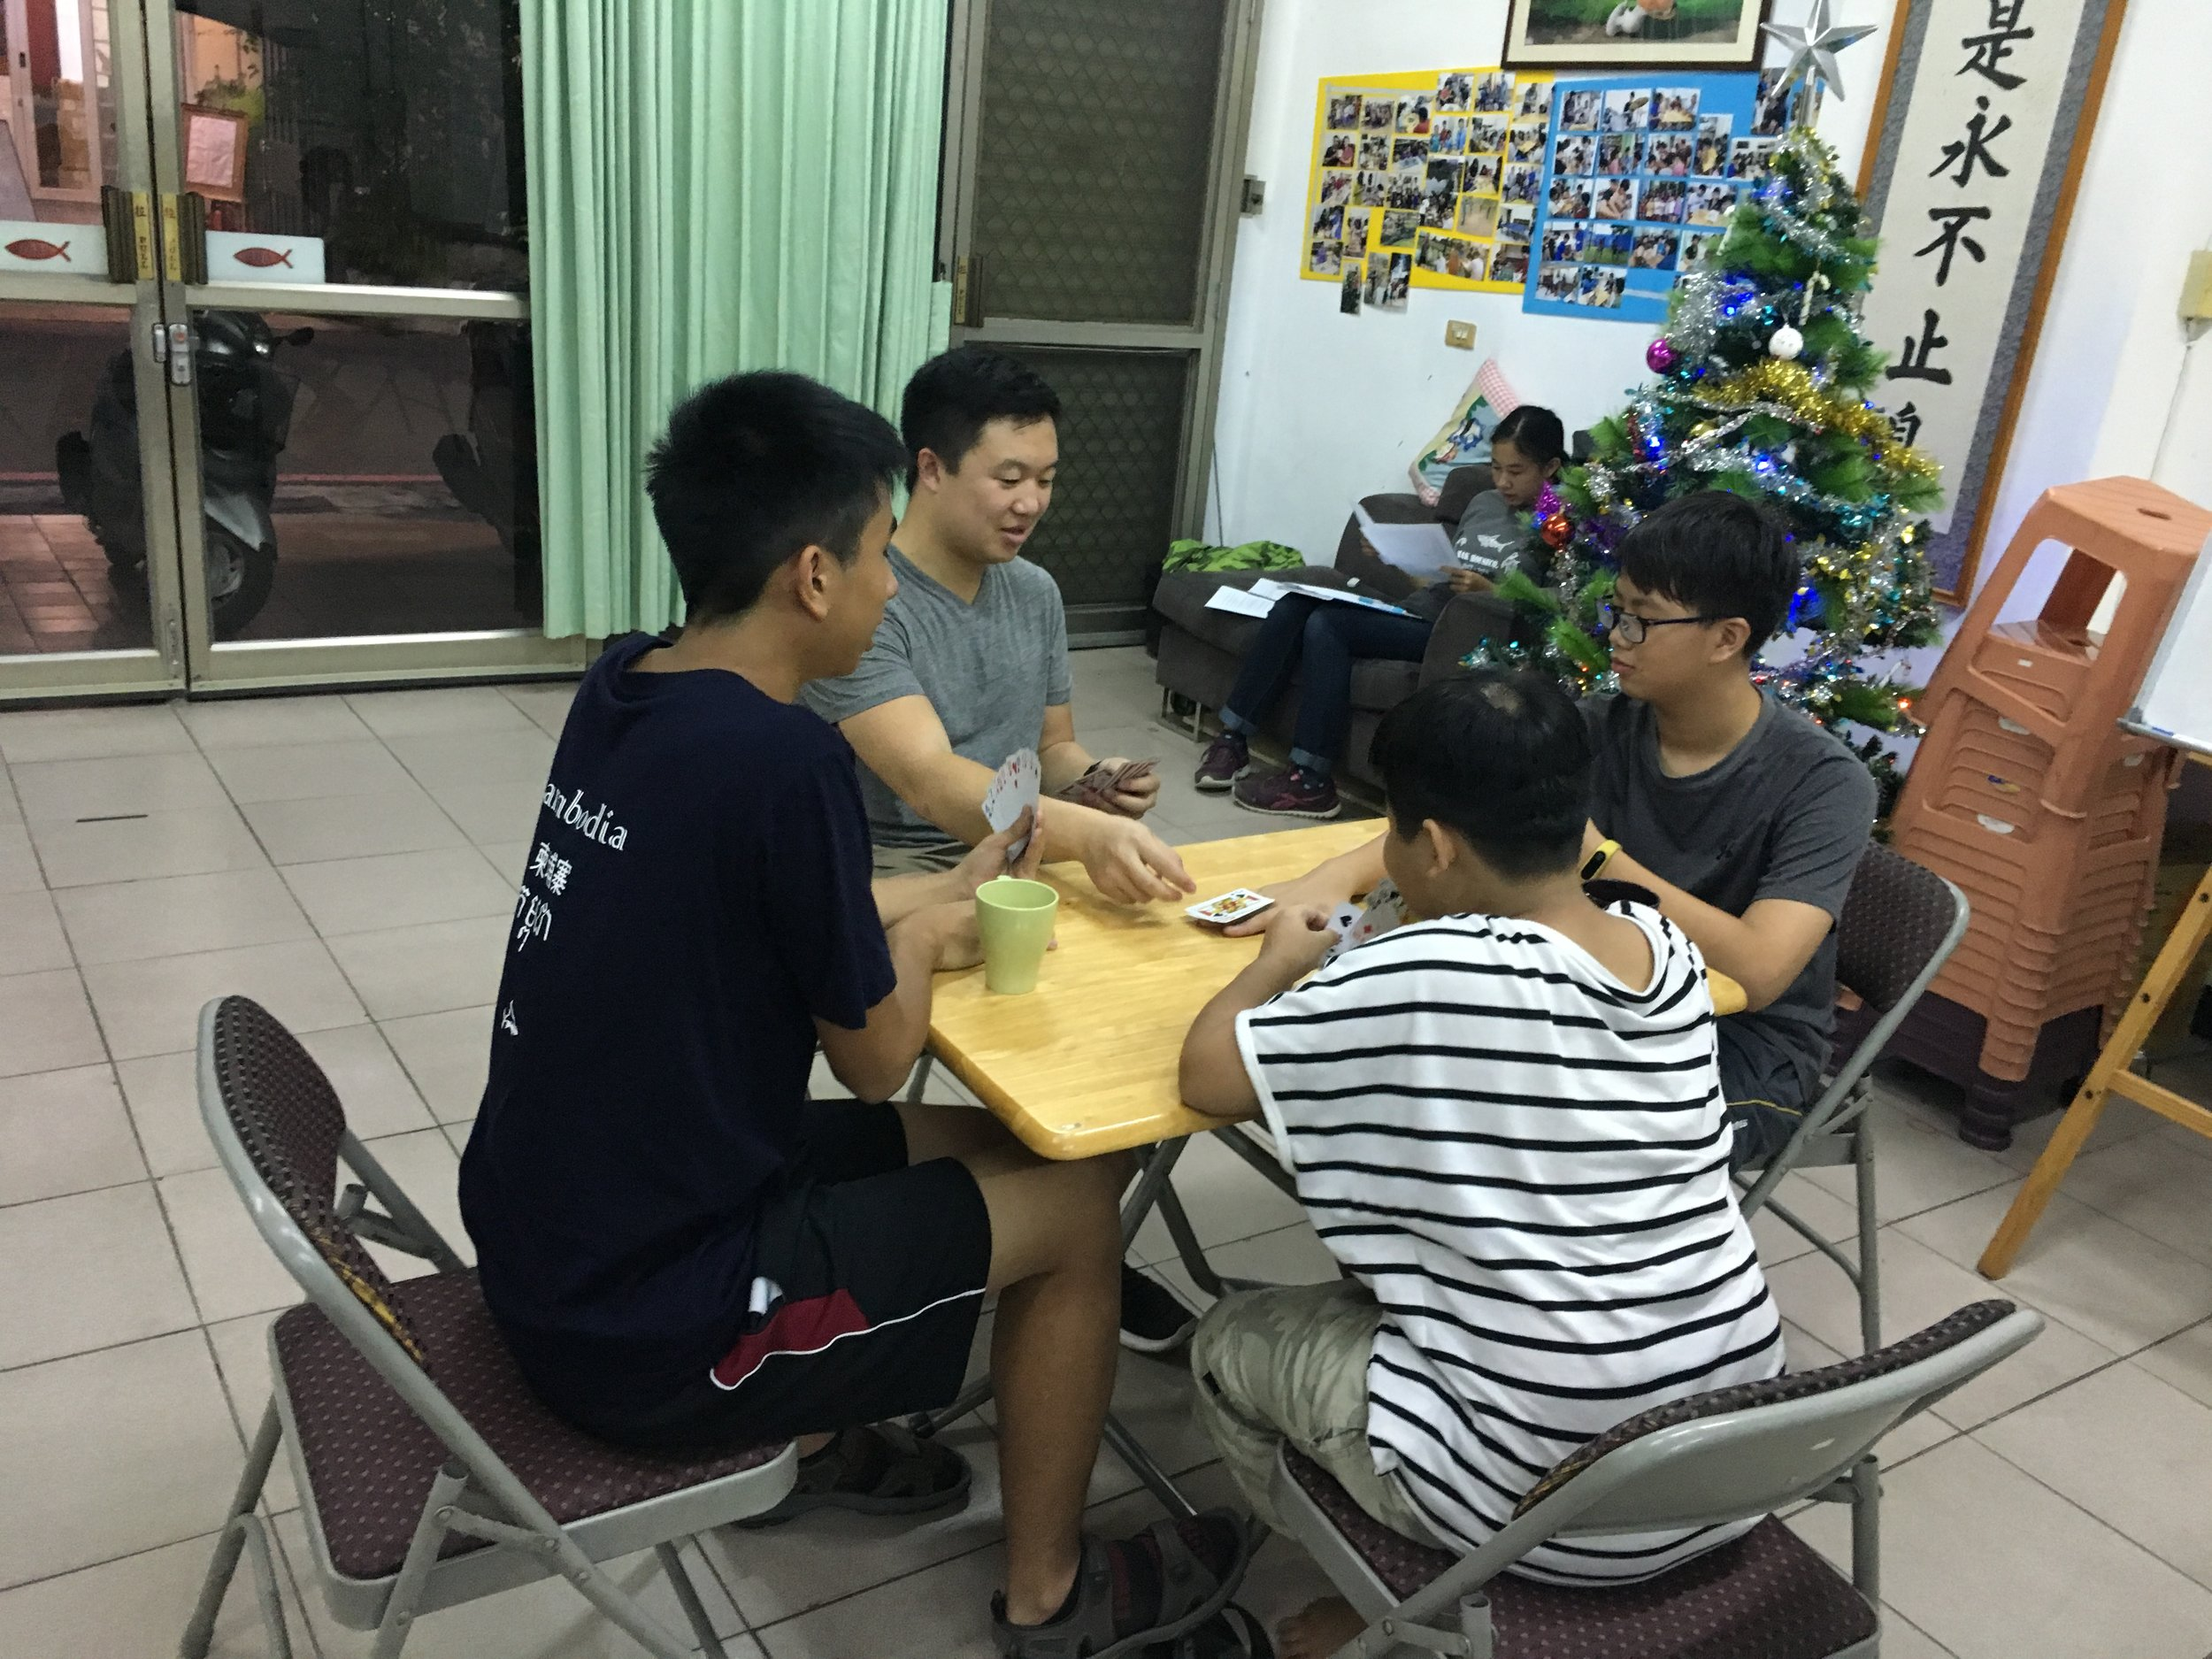 Playing games with kids who attend the community center